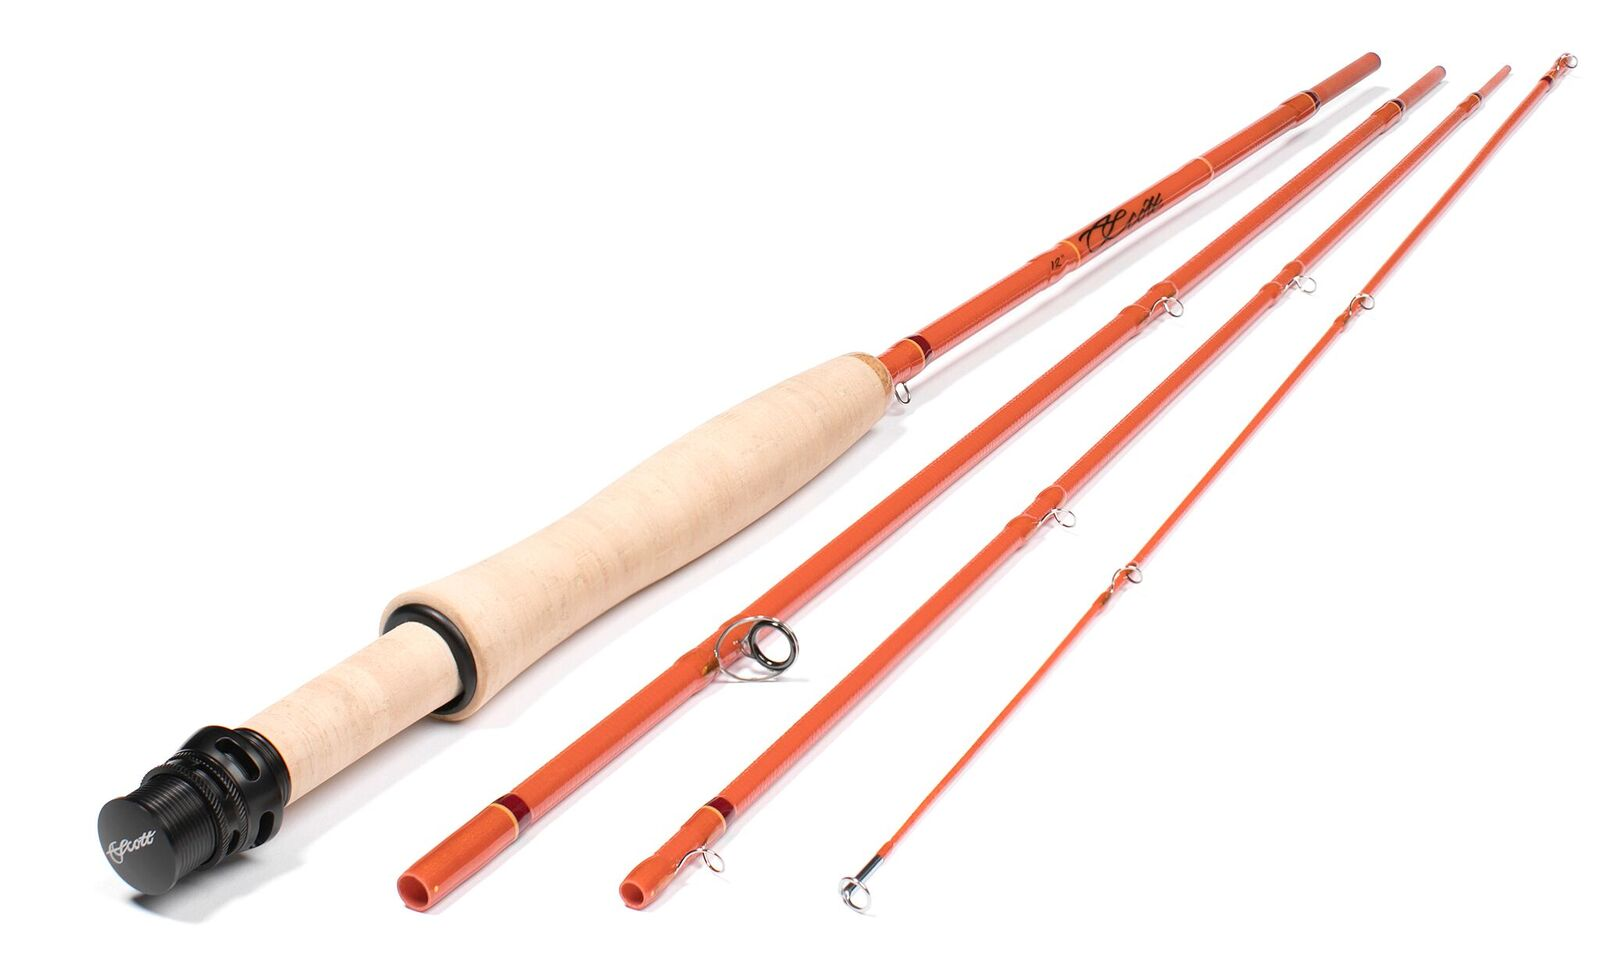 SCOTT FLY ROD COMPANY THE NEW F SERIES | Article Thu 12